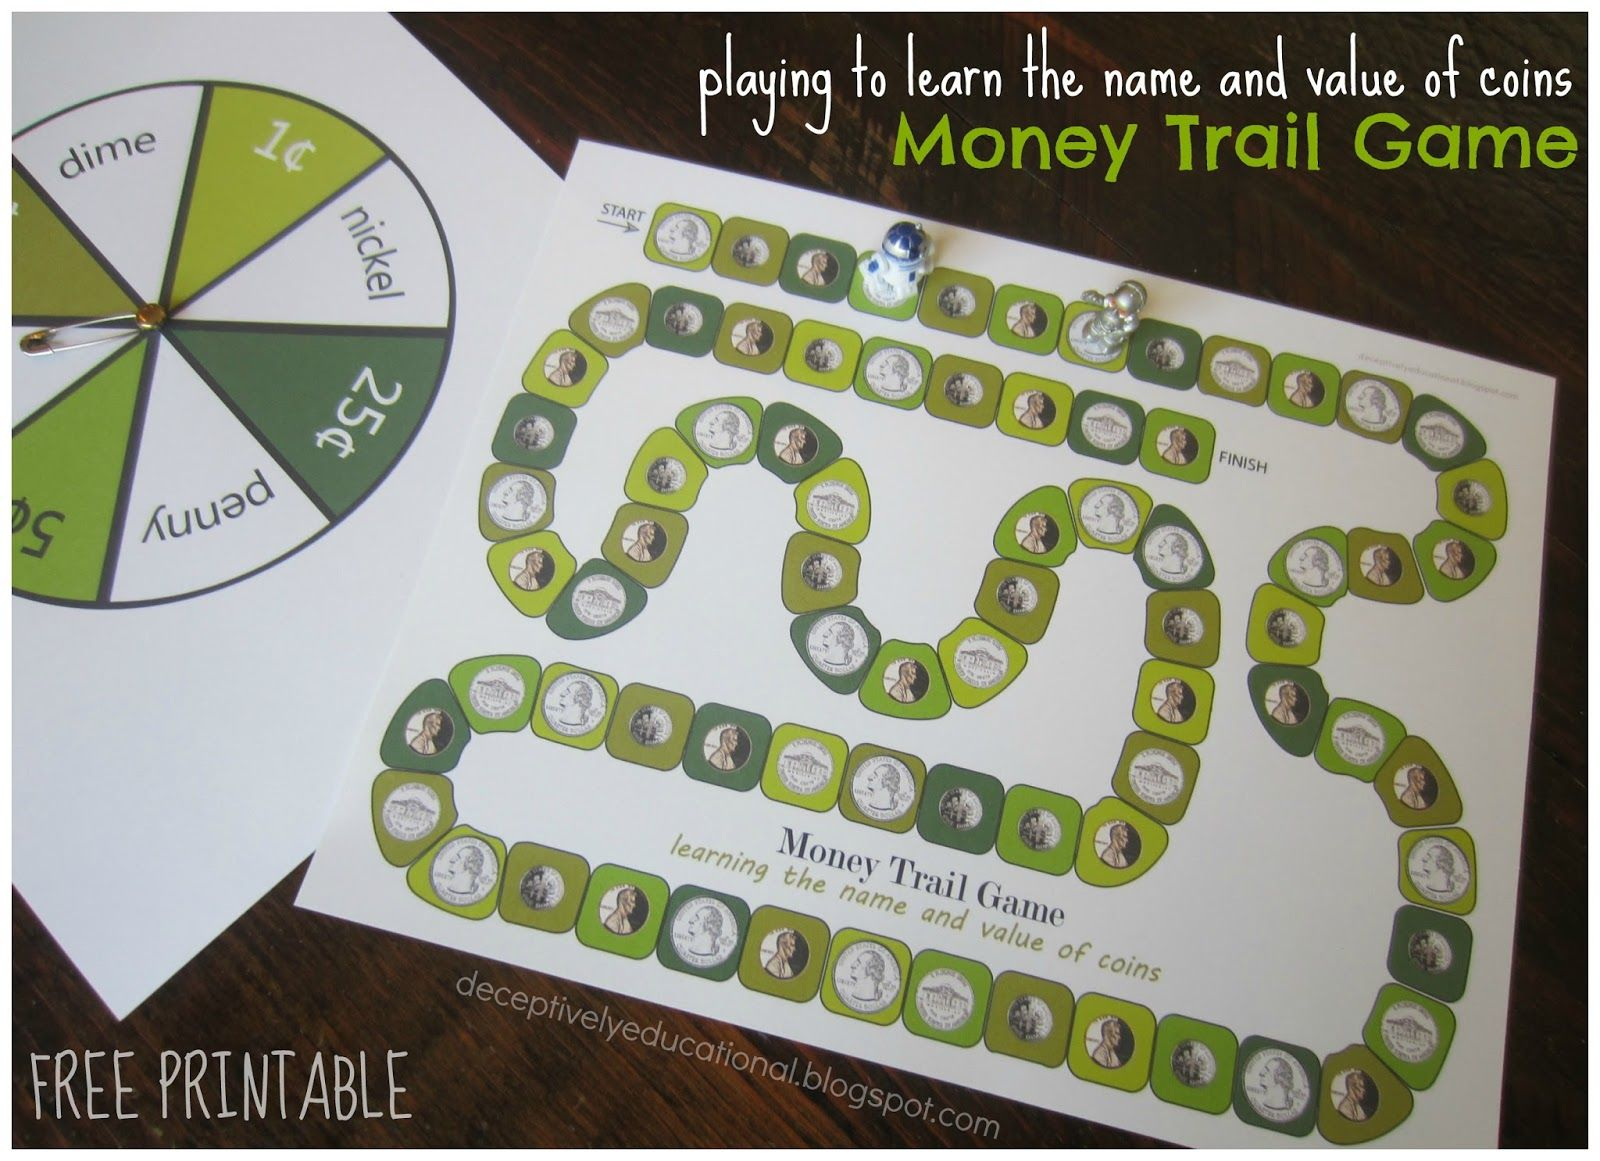 Money Trail Board Game Free Printable To Teach Coin Names